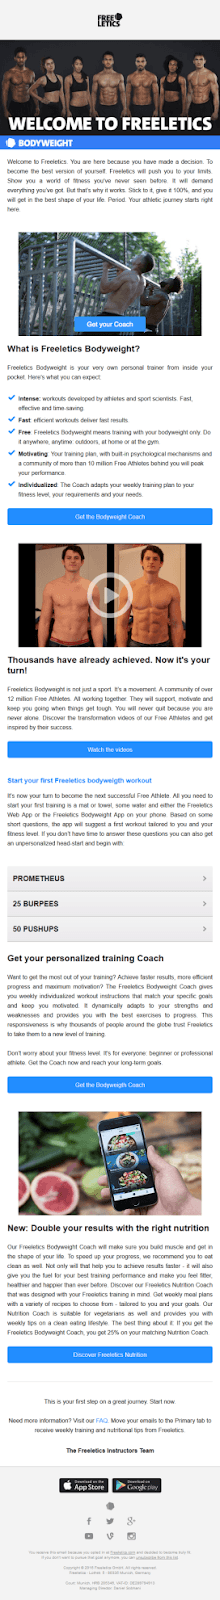 freeletics-email